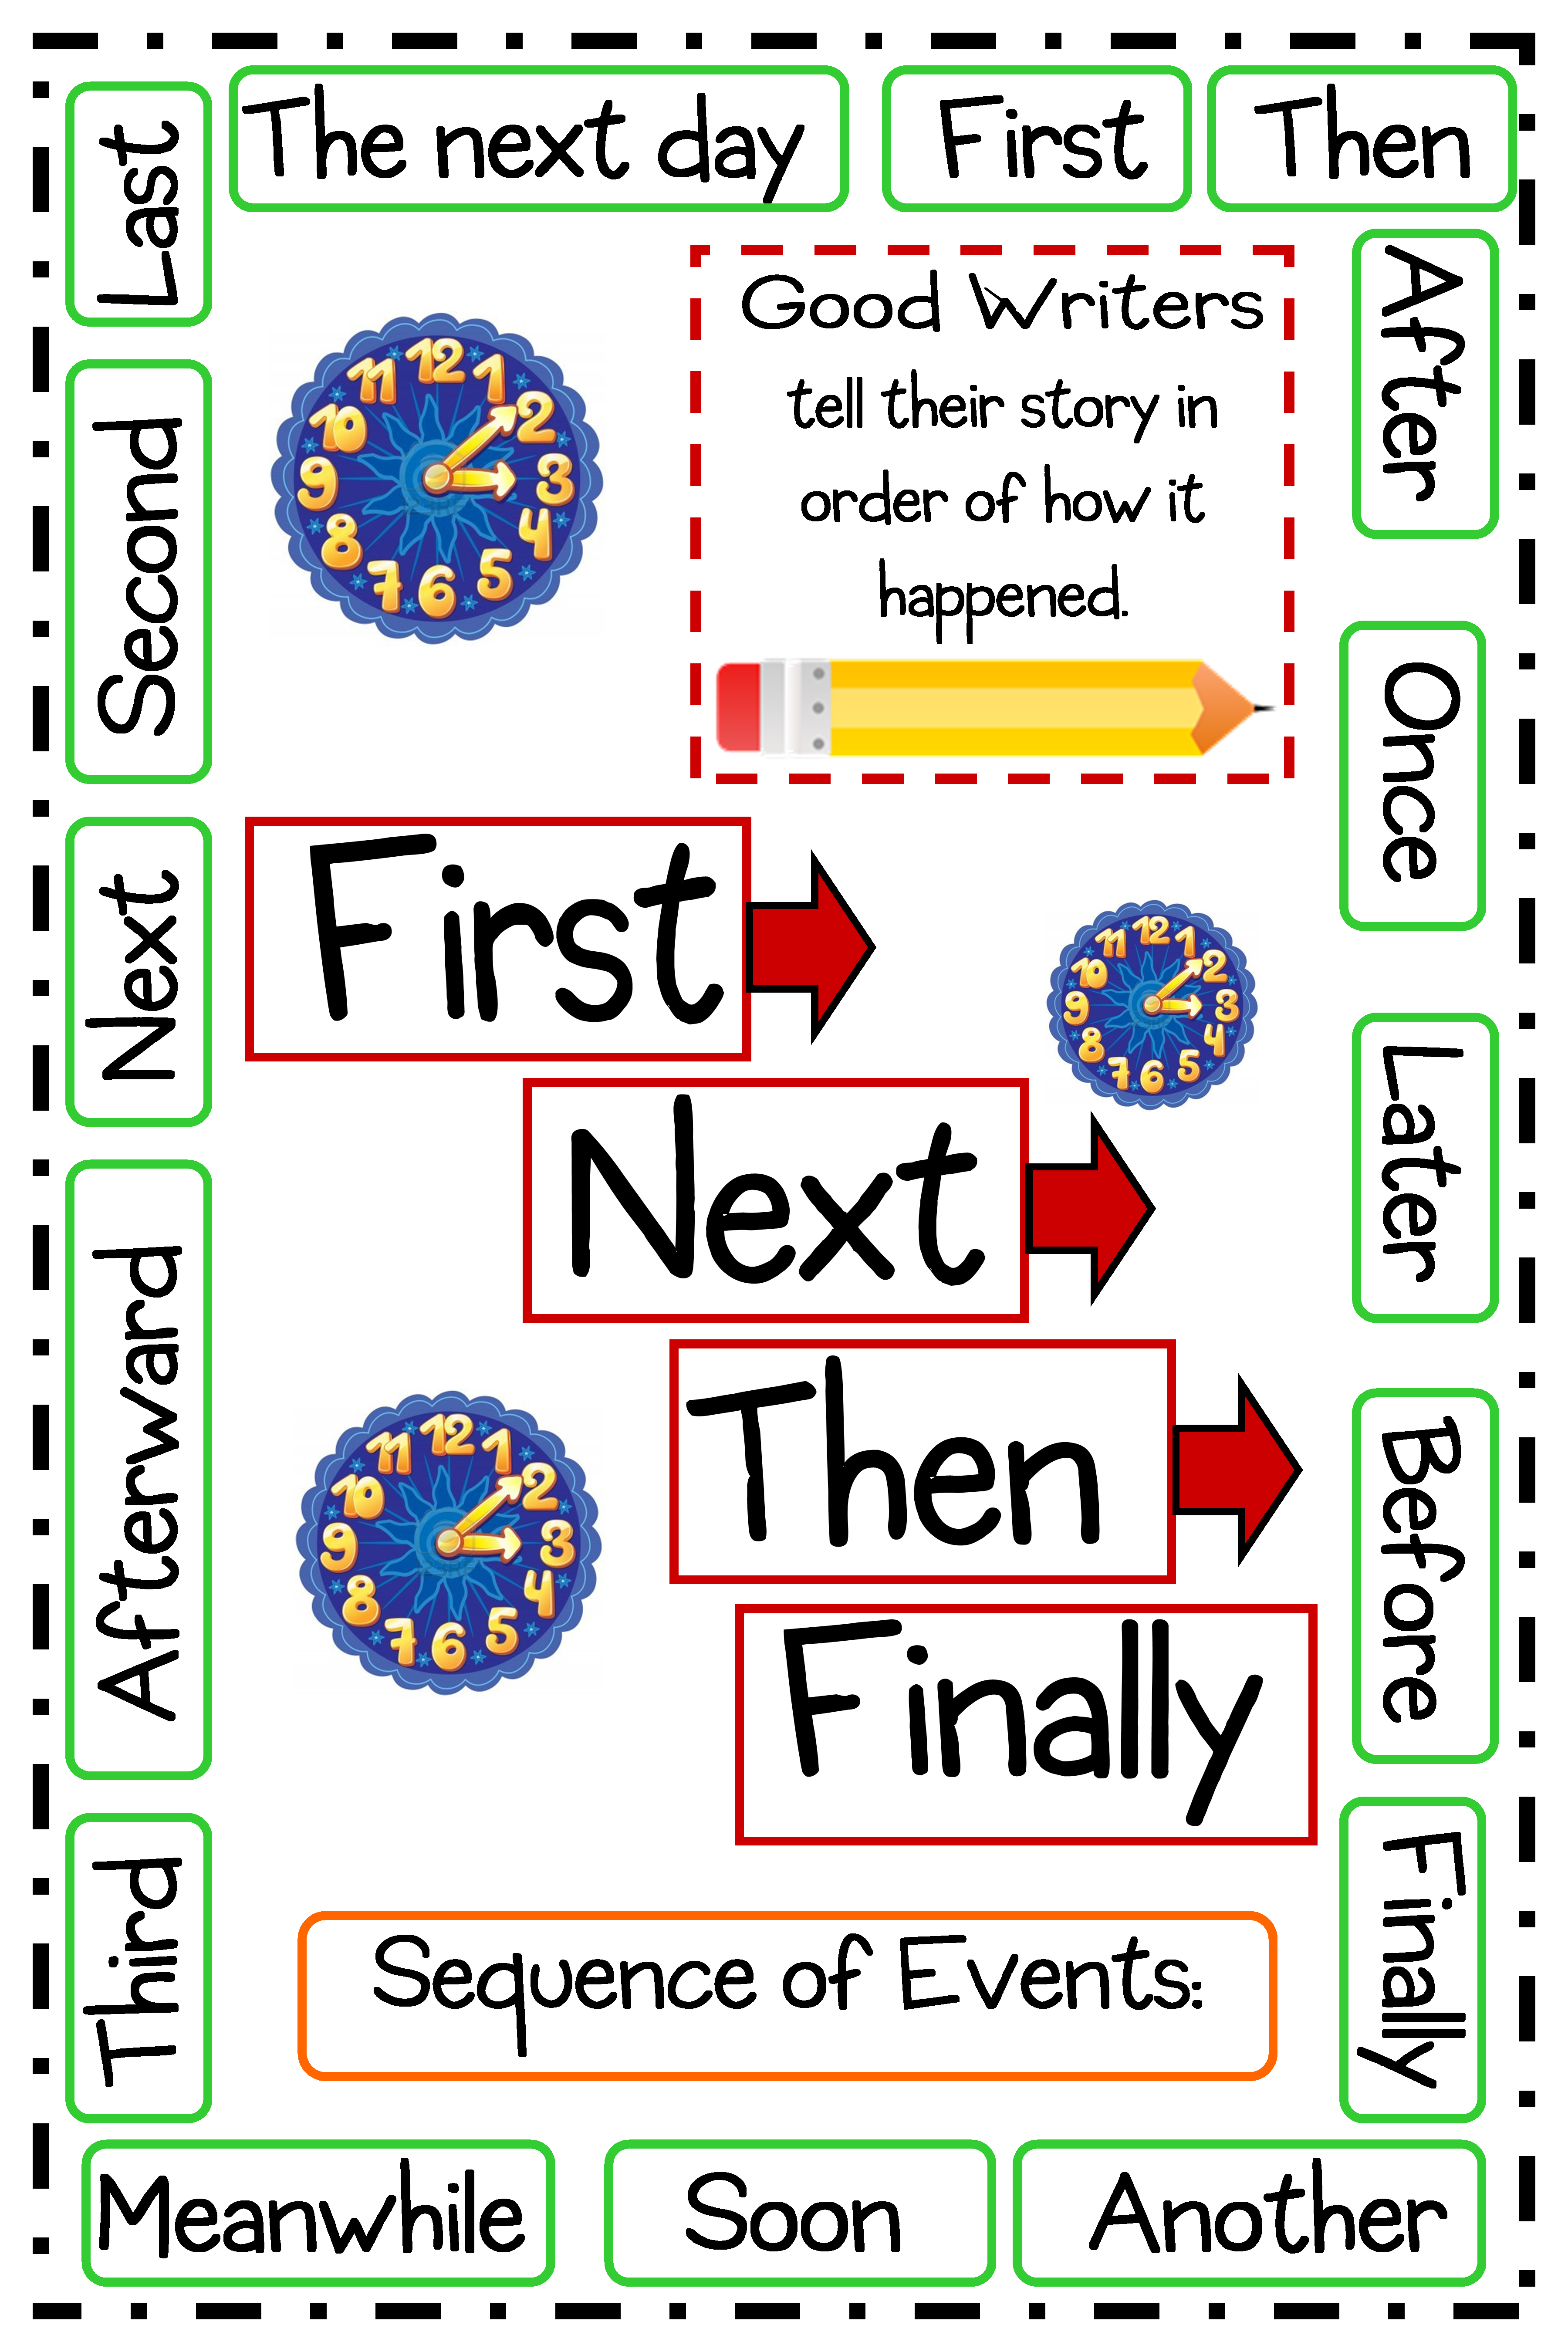 First Next Then Finally Worksheet in addition Sequence Worksheet Worksheets additionally Easter Sch and Language Activities for Sch Therapy   Teaching furthermore  furthermore  also Story Retelling Worksheets For First Grade Great Lesson Plans further Sequence Of Events Worksheets First Then Last Finally Meanwhile At together with  moreover First   Next    Then    Finally    STC Printables   Pinterest as well  in addition First Grade Sequencing Worksheets the 45 Best Sequencing Activities likewise 4 ms file1 adverbs of sequence ppt likewise  together with First   Next    Then    Finally    STC Printables   Pinterest moreover Life Cycle besides . on first next then finally worksheet